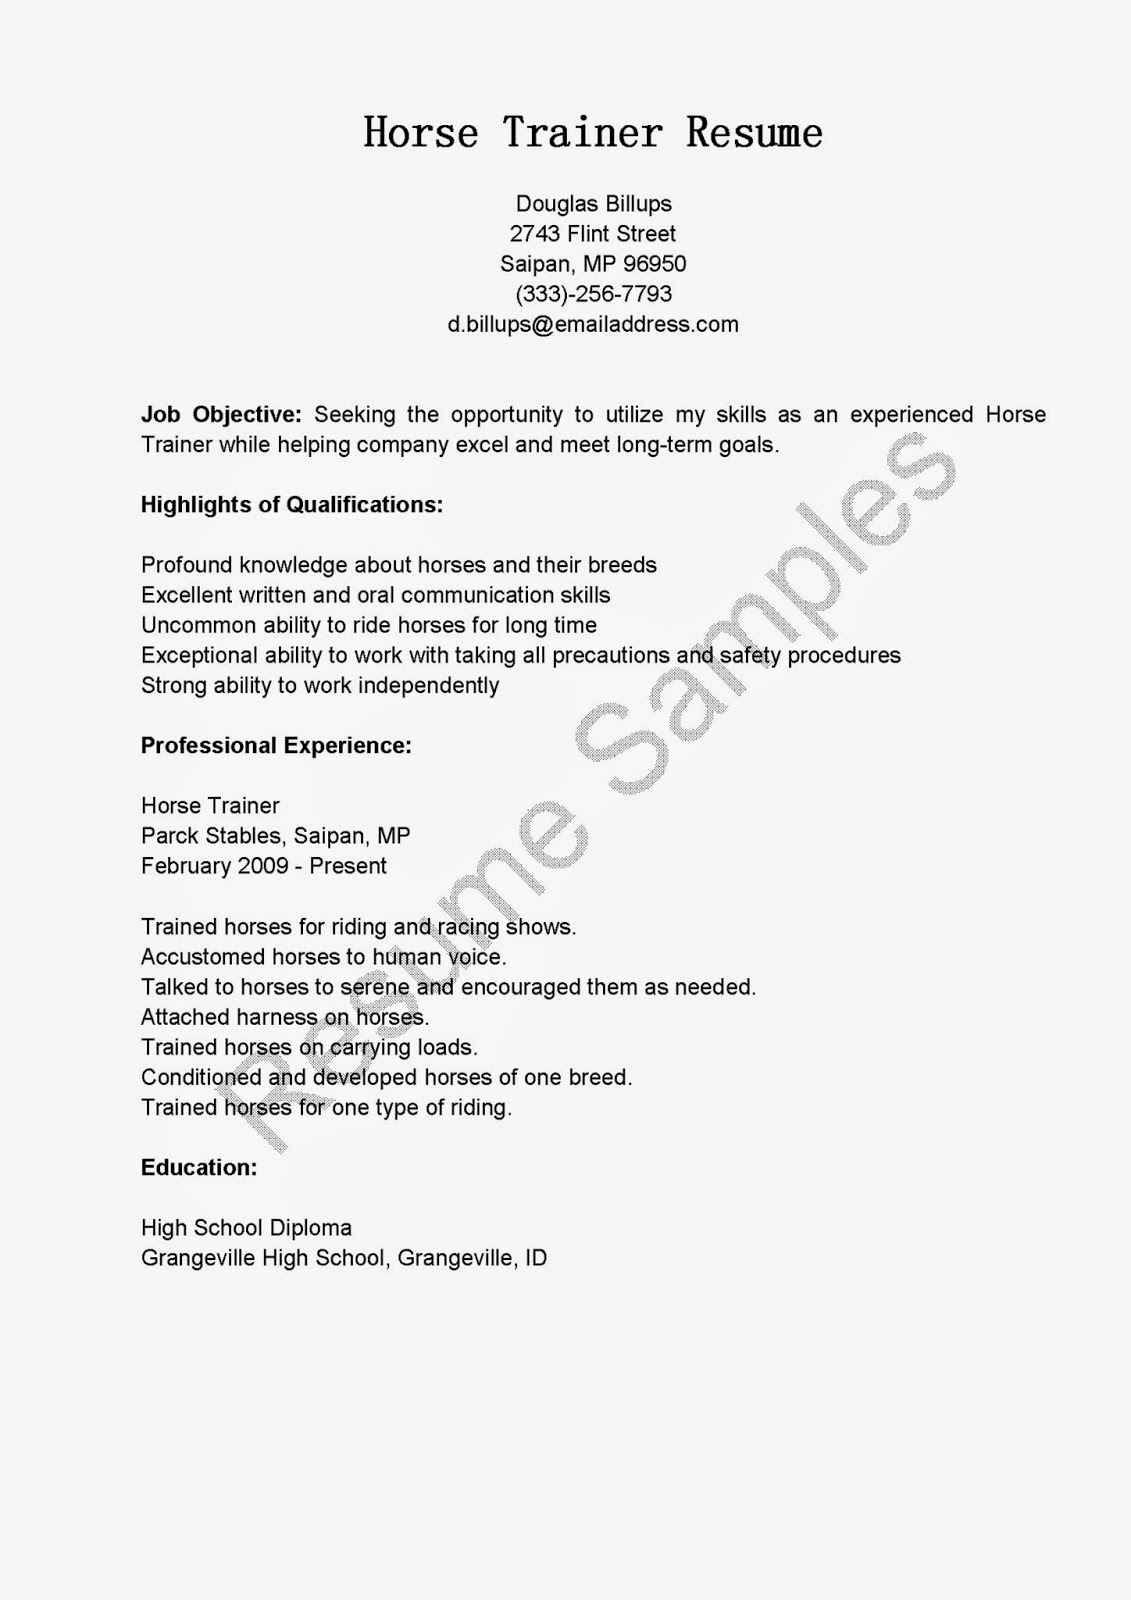 Sample Trainer Resume Resume Samples Horse Trainer Resume Sample